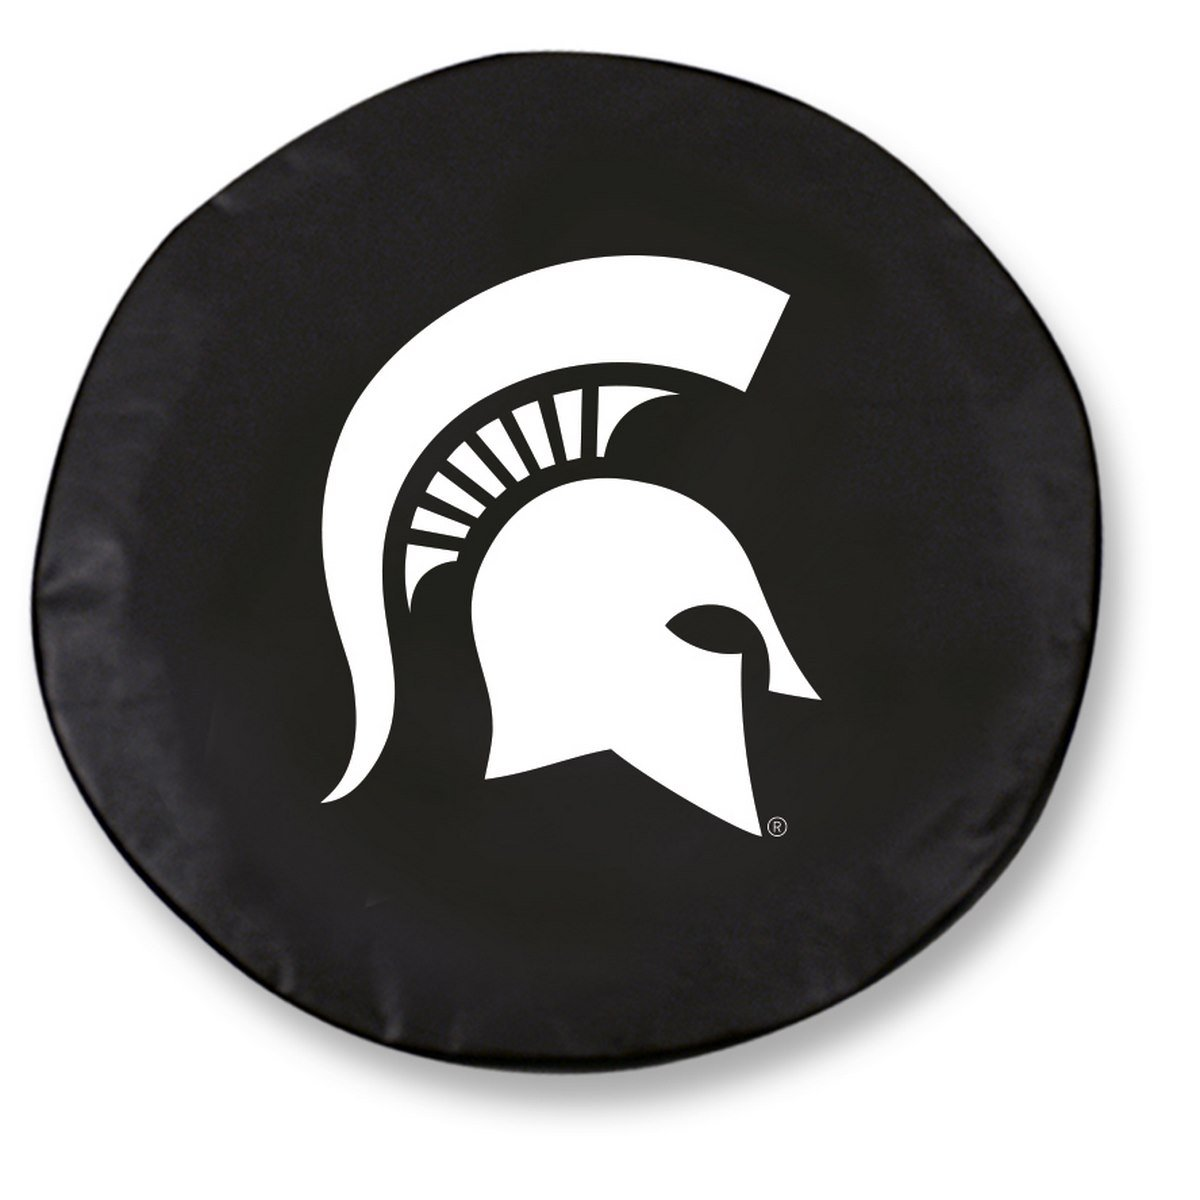 Michigan State University Tire Cover with Spartan logo on stylish Black vinyl by Covers by HBS